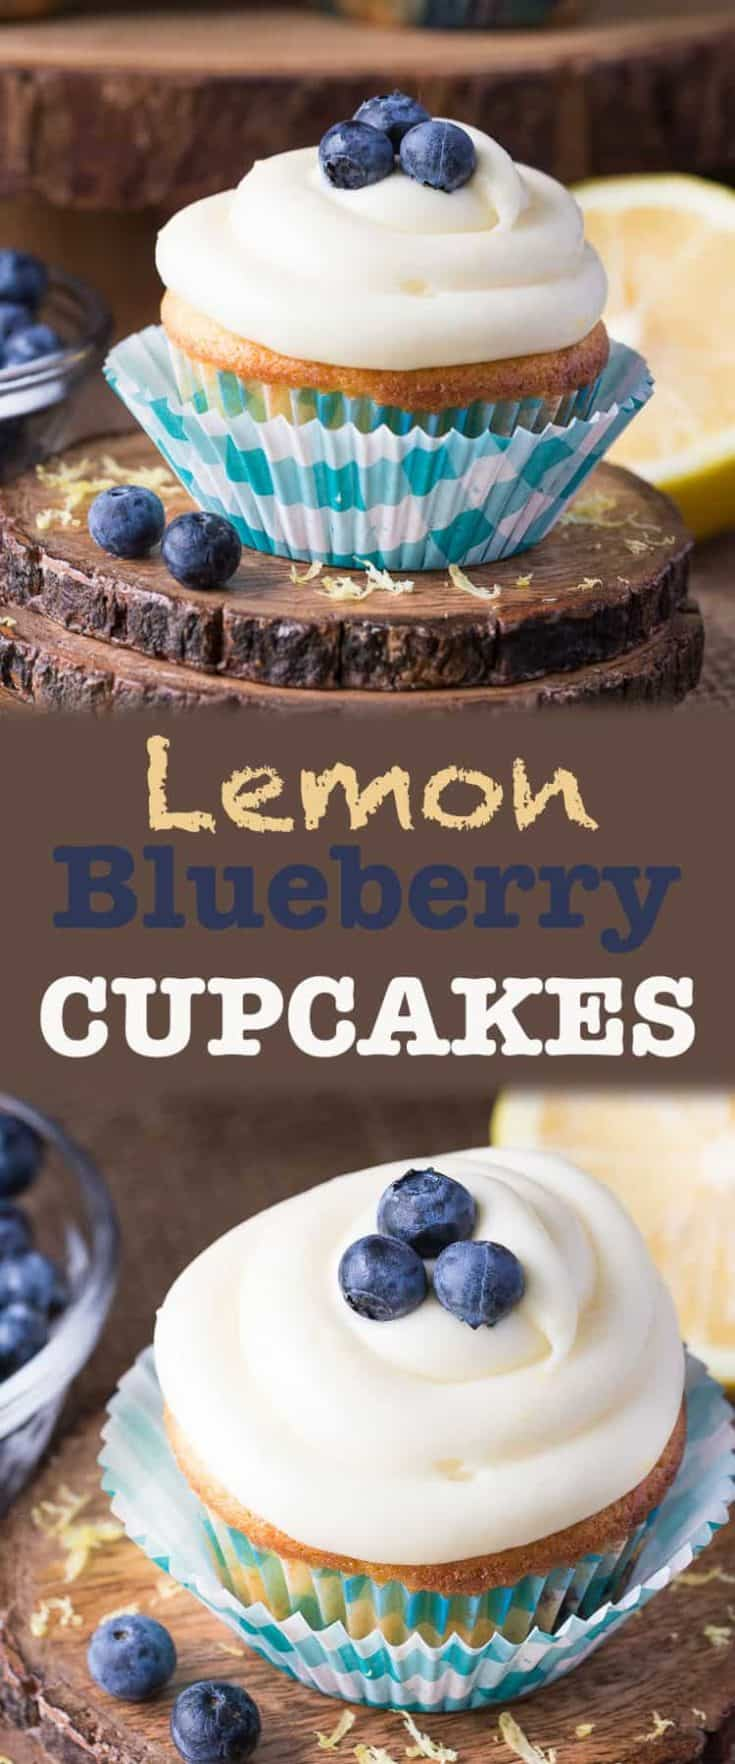 Blueberry Lemon Cupcakes are moist and fluffy cake with delicious cream cheese icing, it's the perfect dessert recipe to celebrate summer and use those fresh berries. #cupcakes #cupcakerecipes #recipes #easyrecipes #yummyrecipes